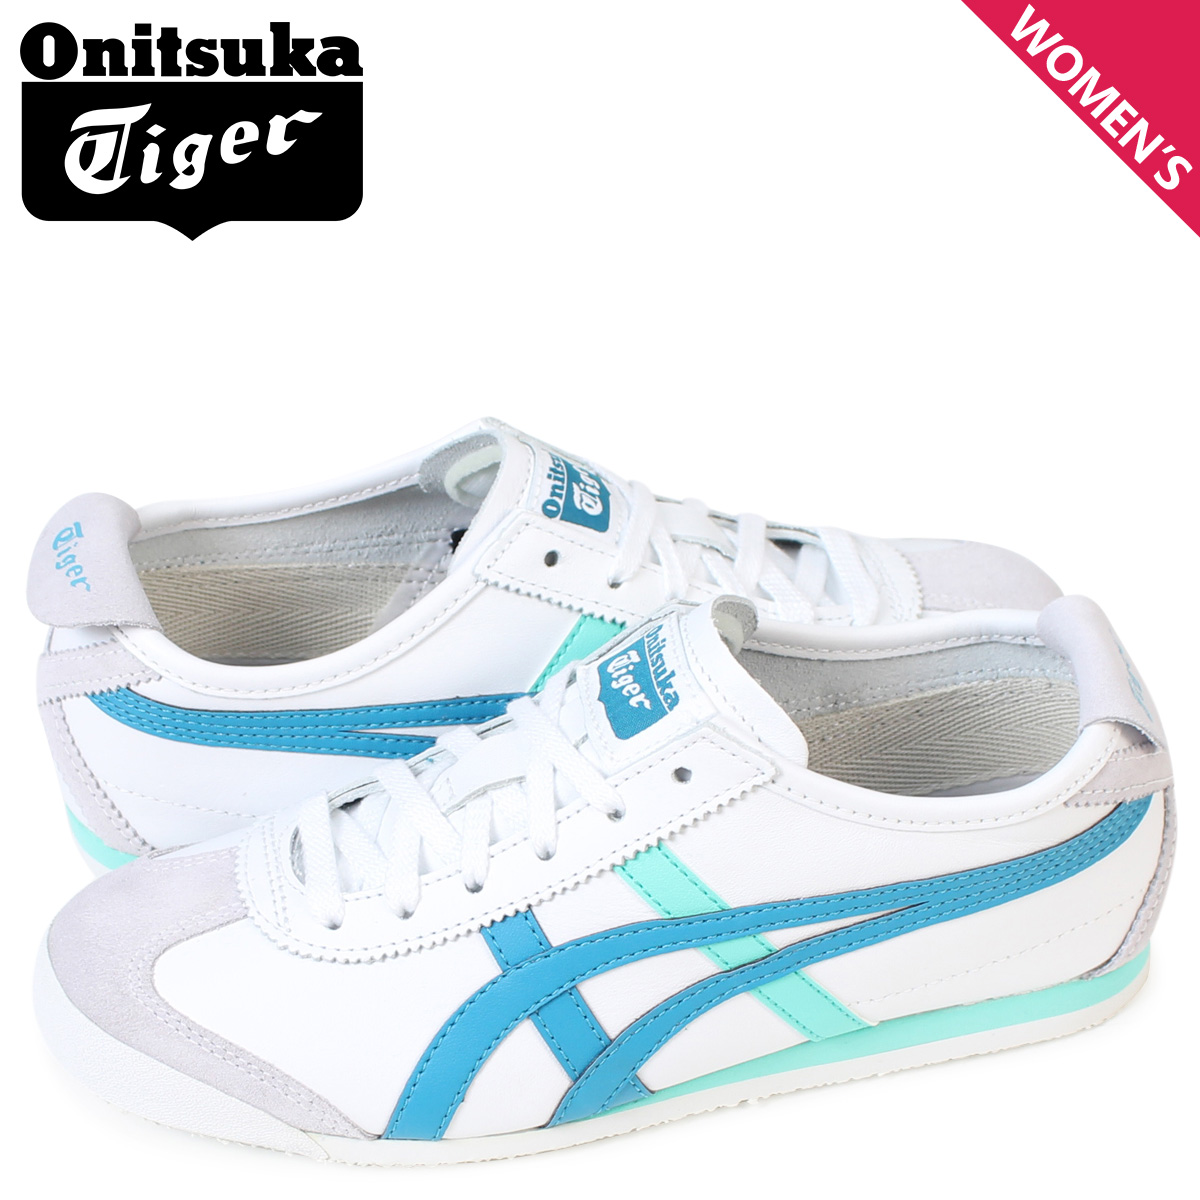 c020260f8b5d  the Onitsuka tiger which gets high popularity as from Japan in Europe!